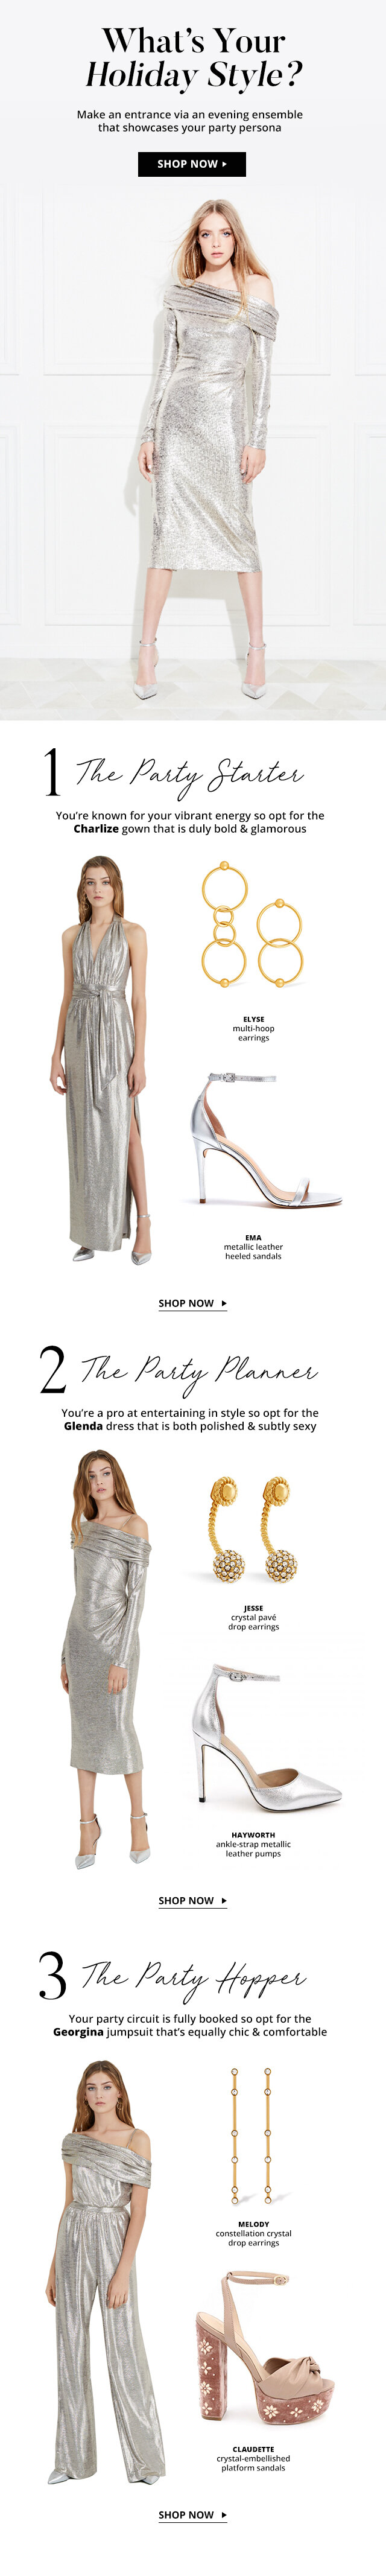 12.12: RZC: What's Your Holiday Style ft Silver Dresses.jpg